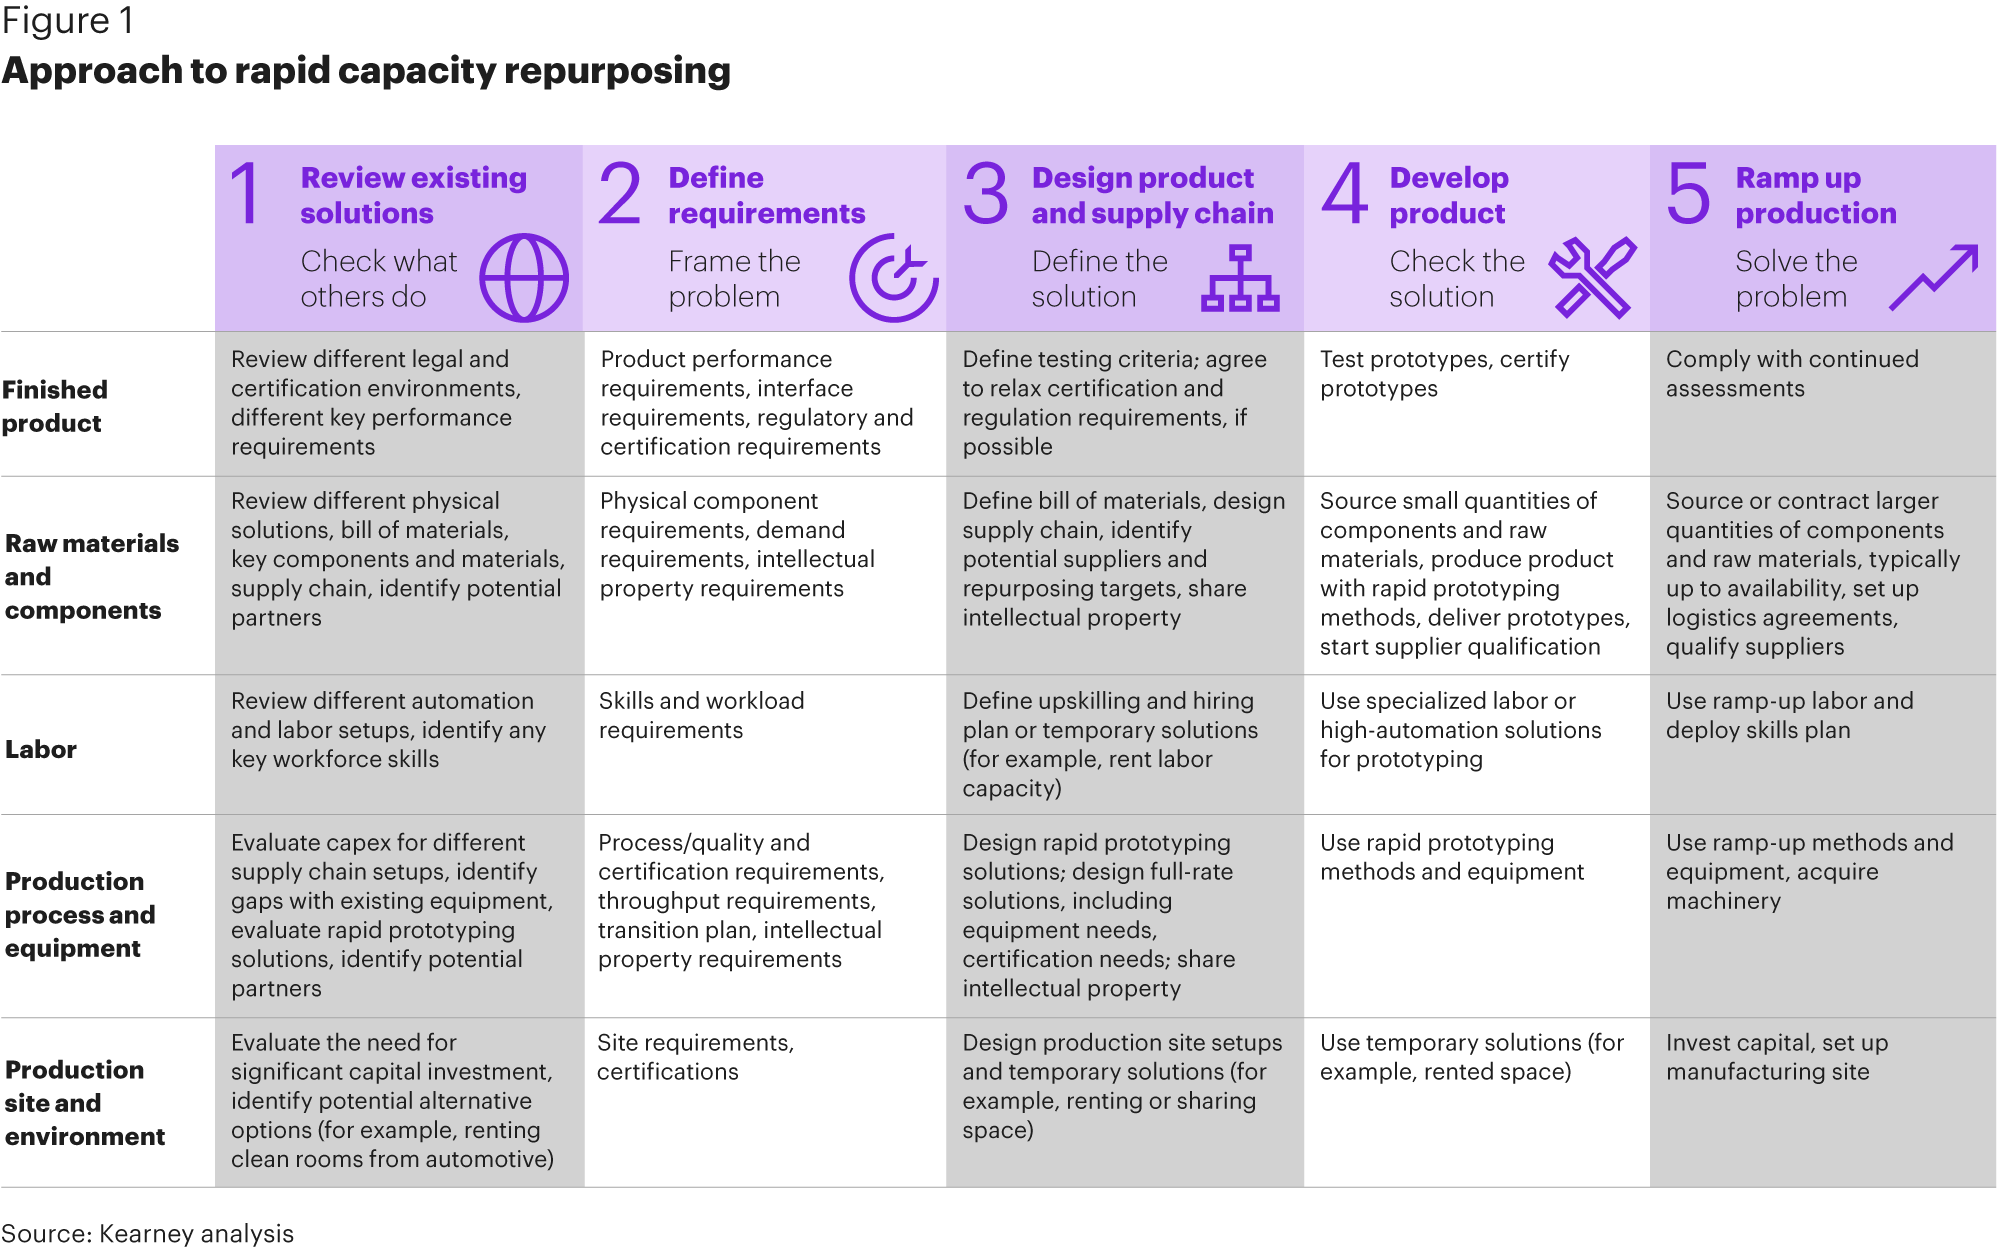 Kearney - Approach to Rapid Capacity Asset Repurposing Framework